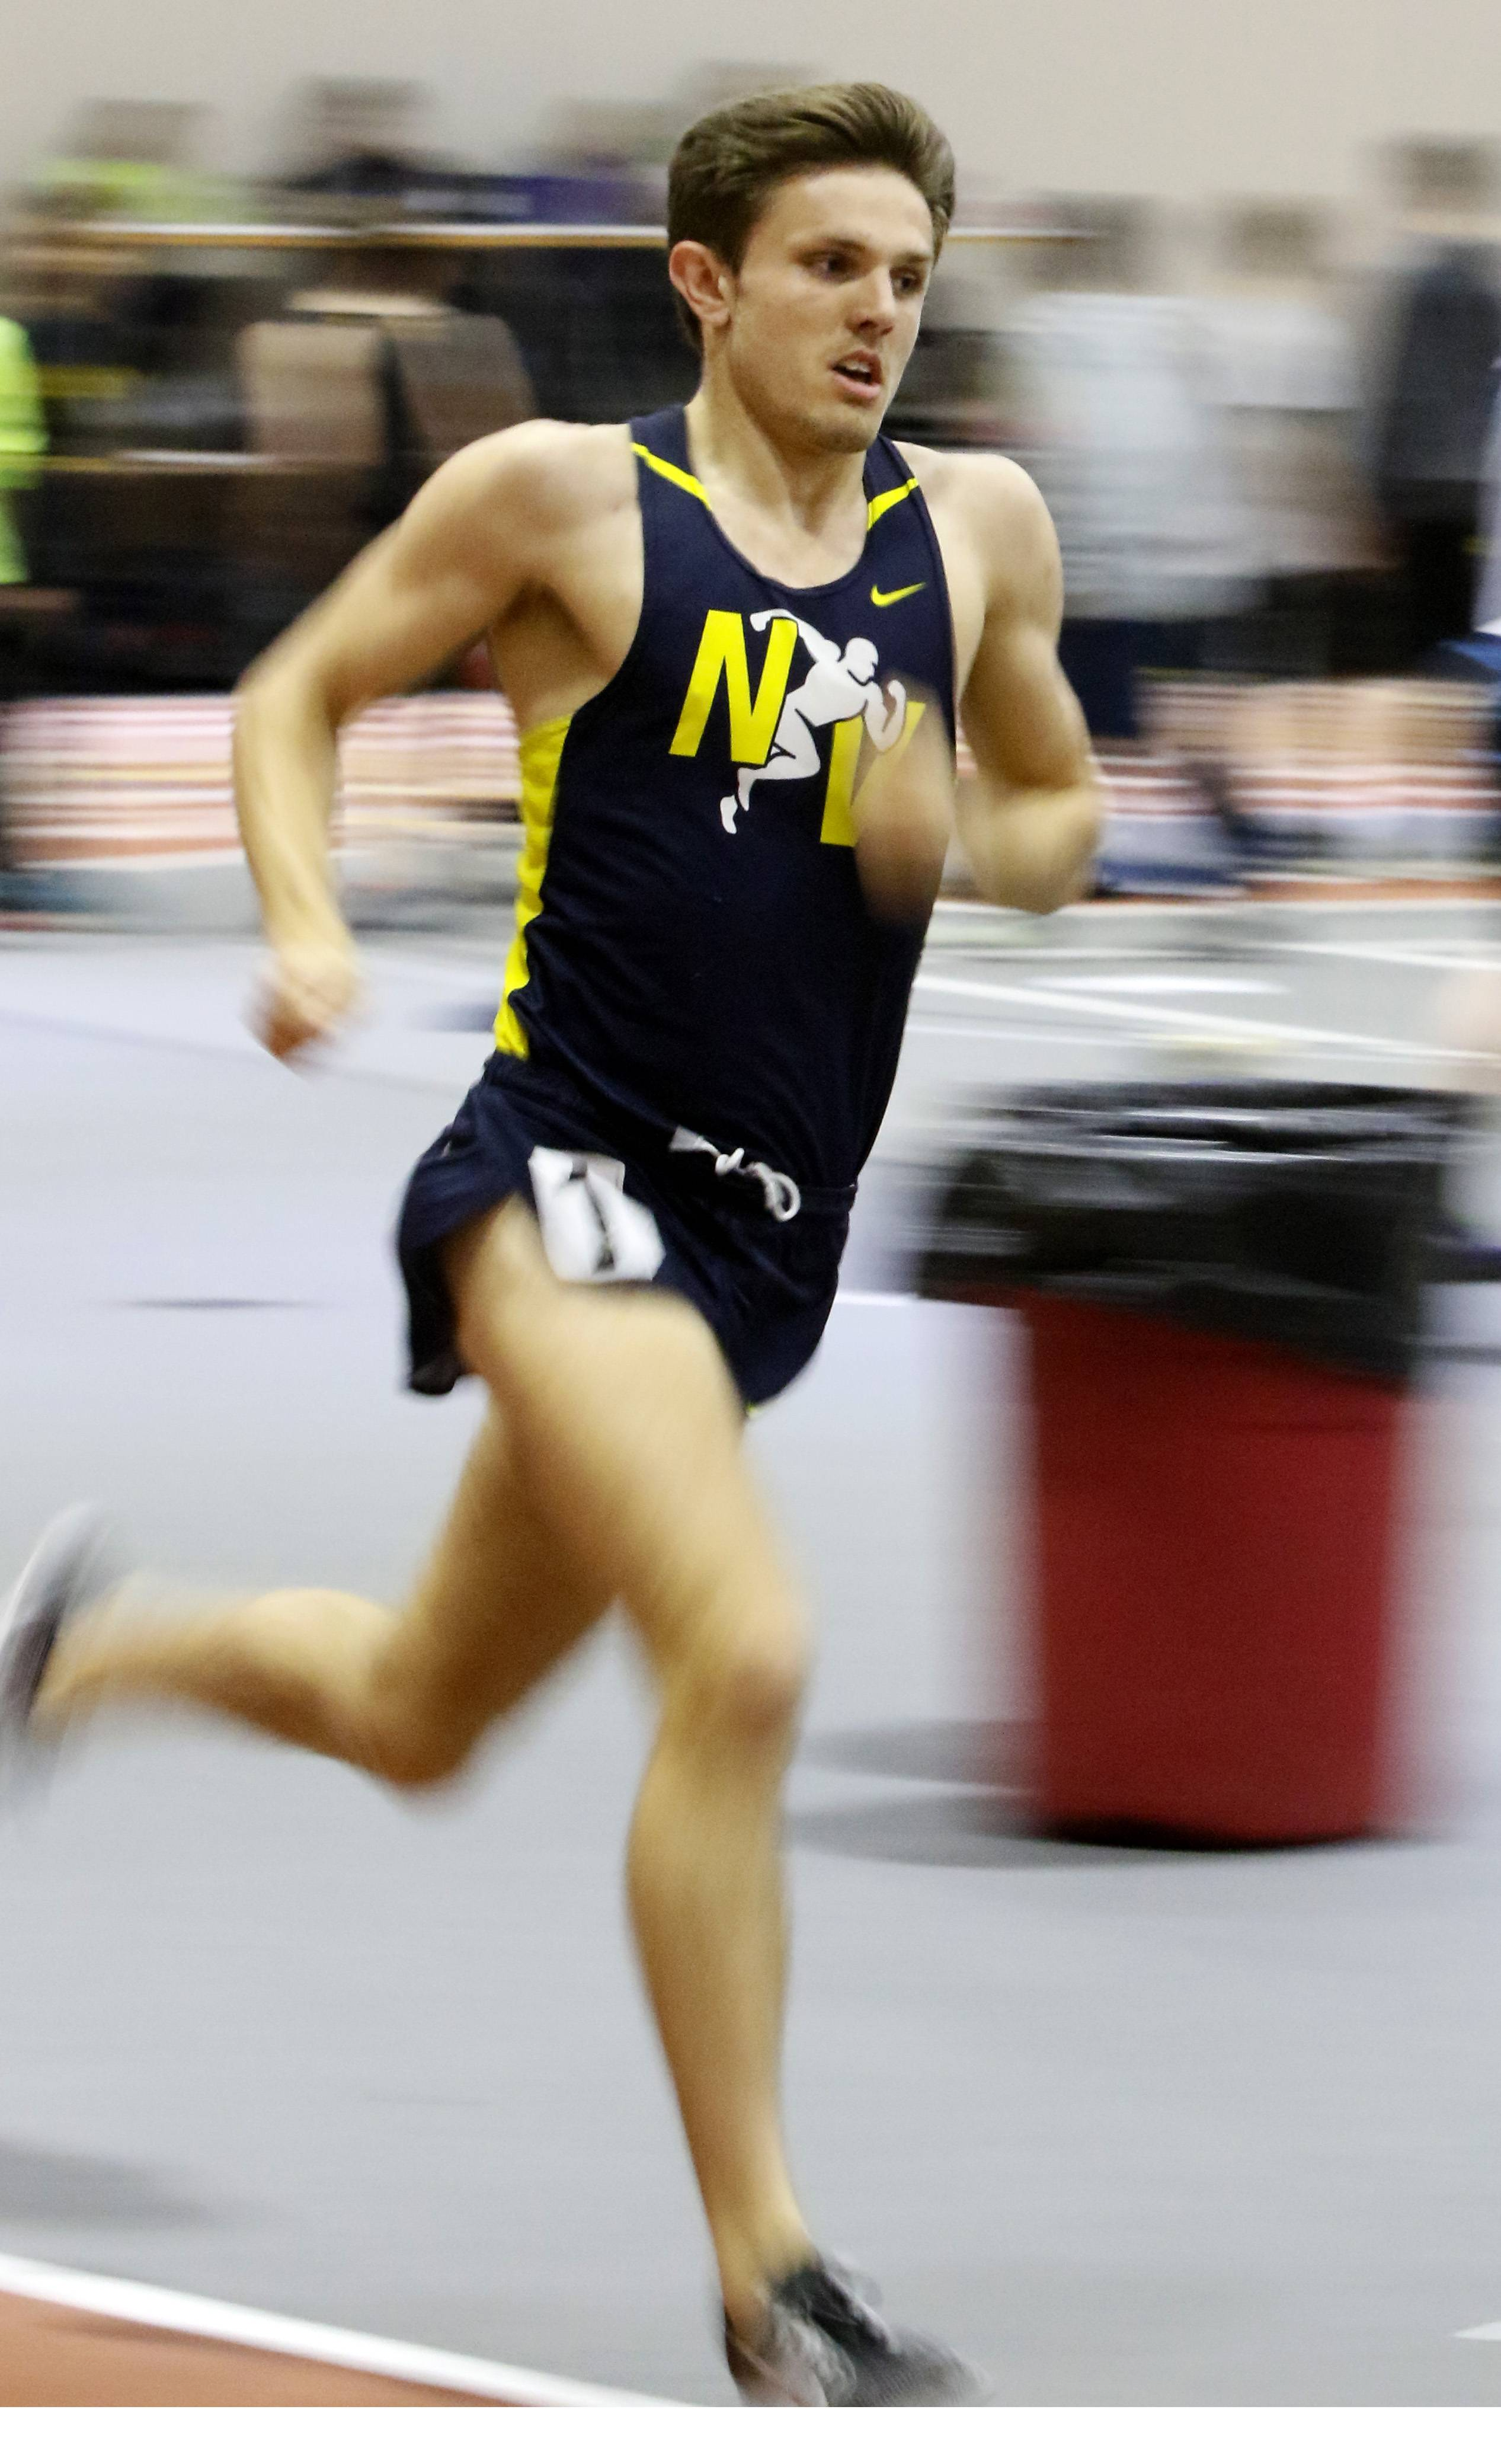 Neuqua Valley's Jake McEneaney wins the 1600 meter run at the DuPage Valley Conference boys indoor track meet at North Central College.